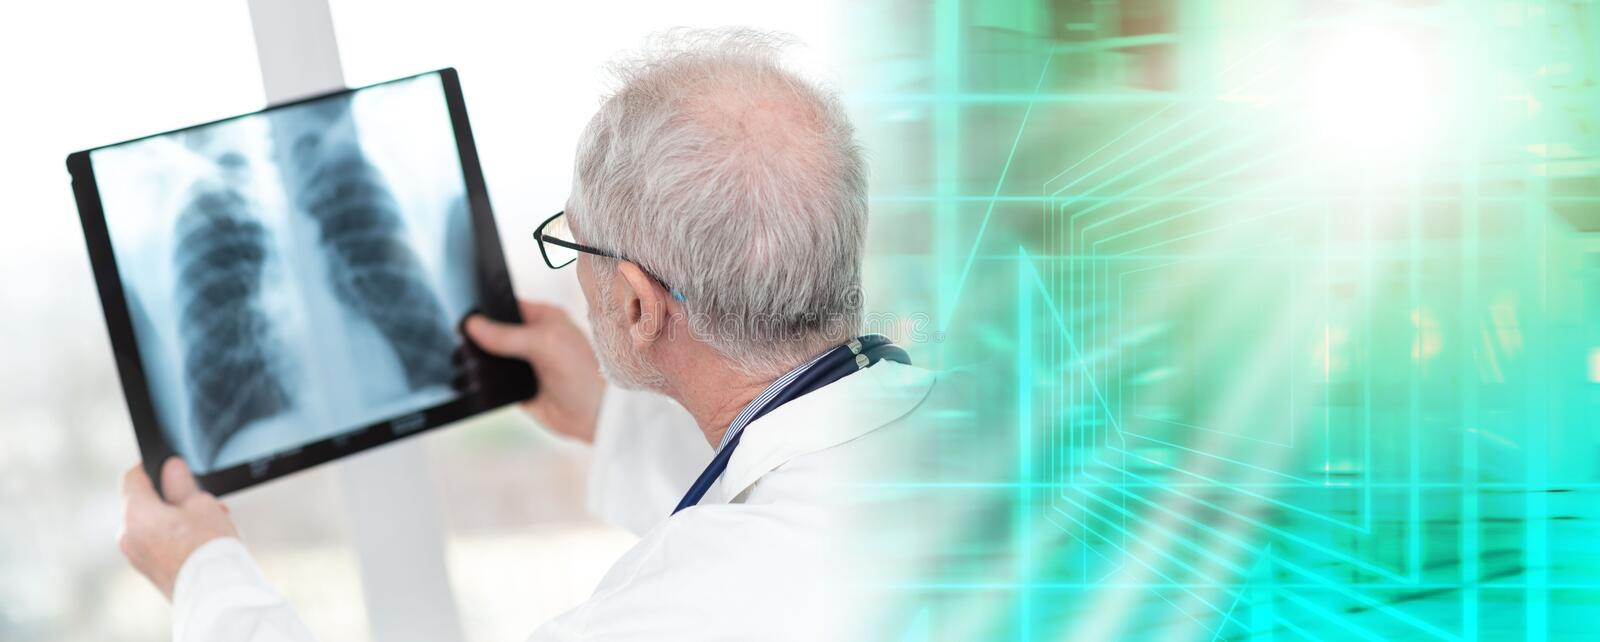 Senior doctor looking at x-ray; multiple exposure. Senior doctor looking at x-ray in clinic; multiple exposure royalty free stock image